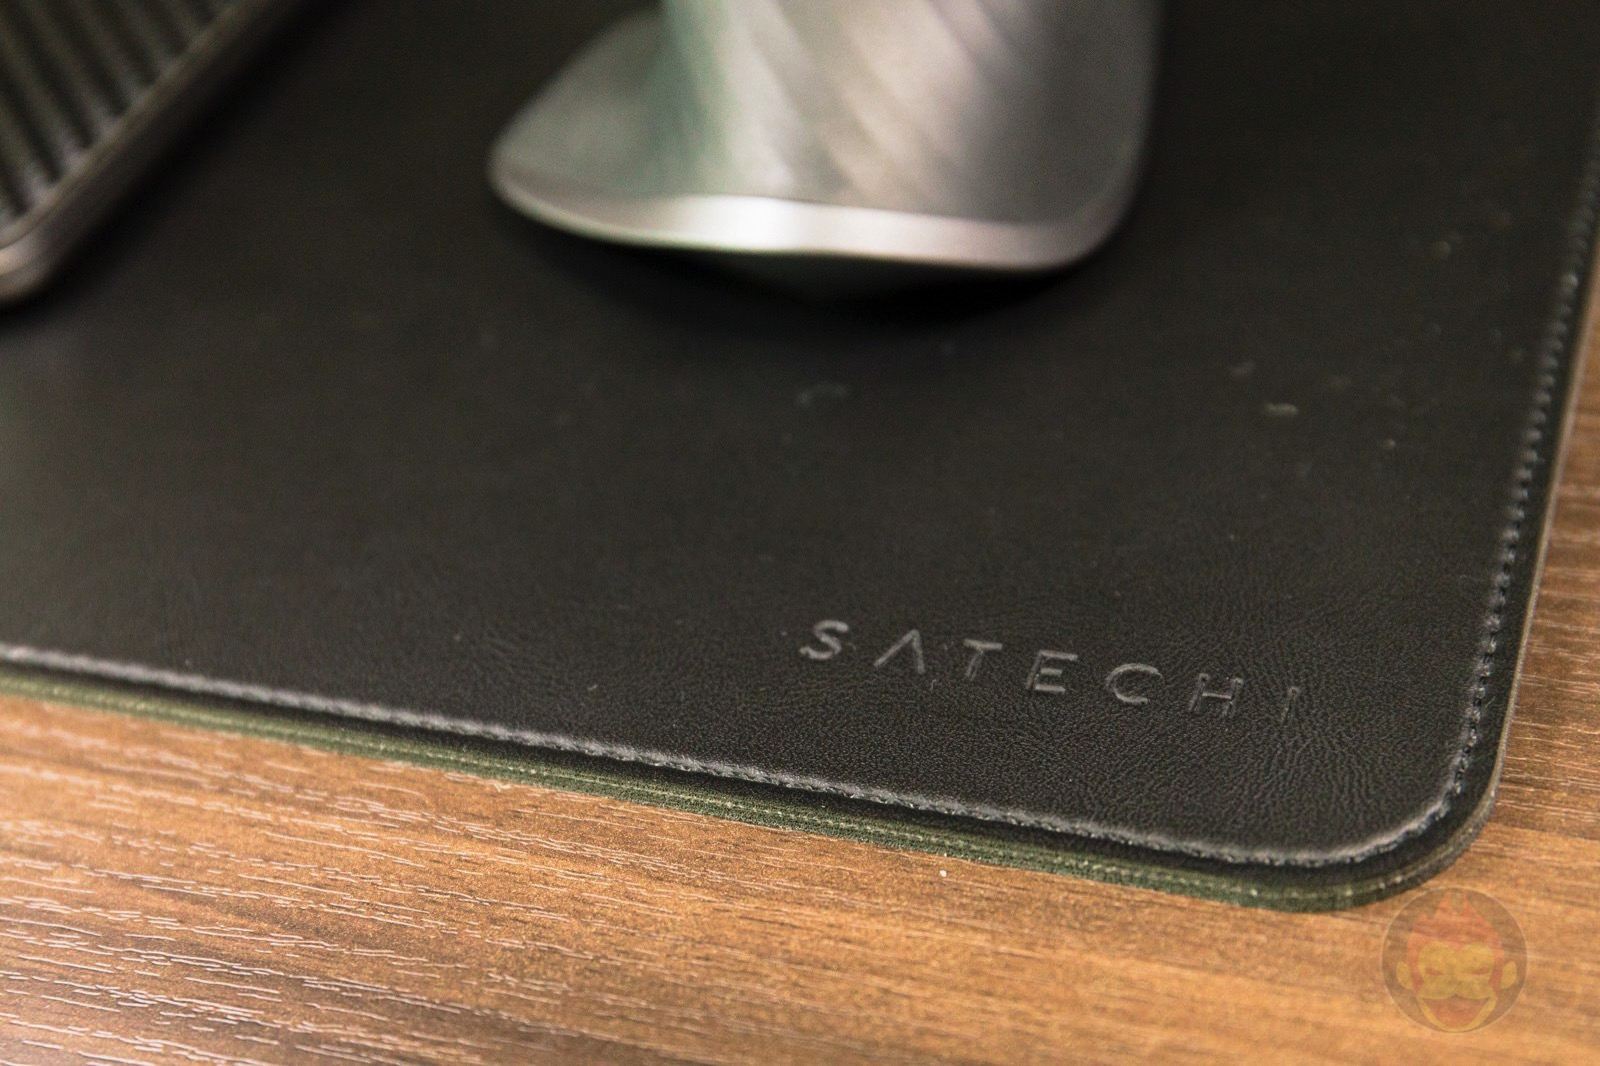 Satechi eco leather deskmate deskmat review 01